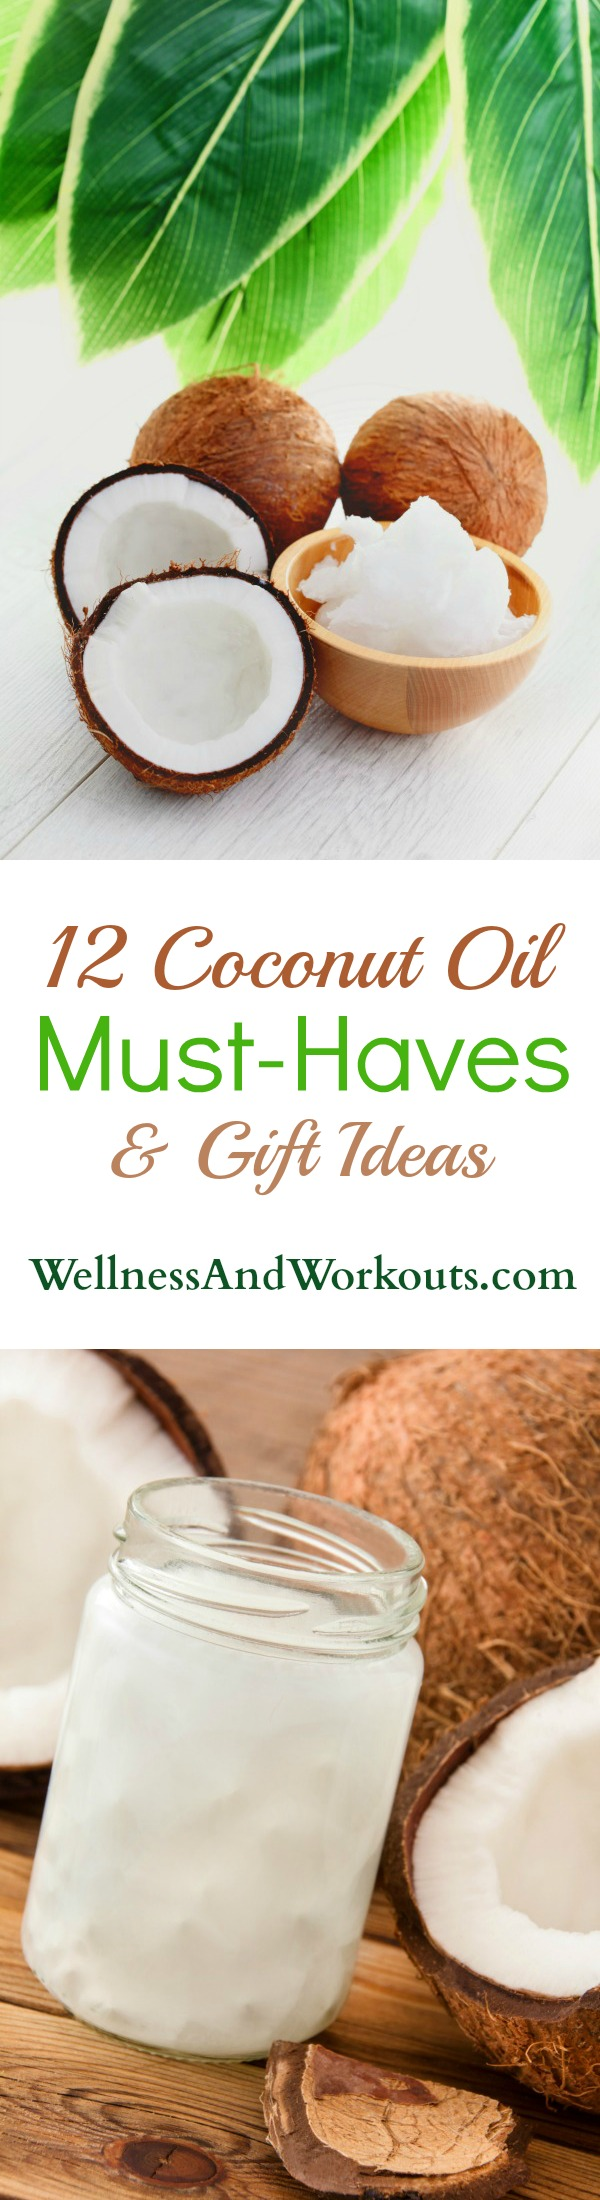 Coconut oil has so many uses--for weight loss, smoothies, DIY natural beauty, cooking and recipes. Here is my list of 12+ must haves and gift ideas for the coconut oil lover! Have you seen #6 before?